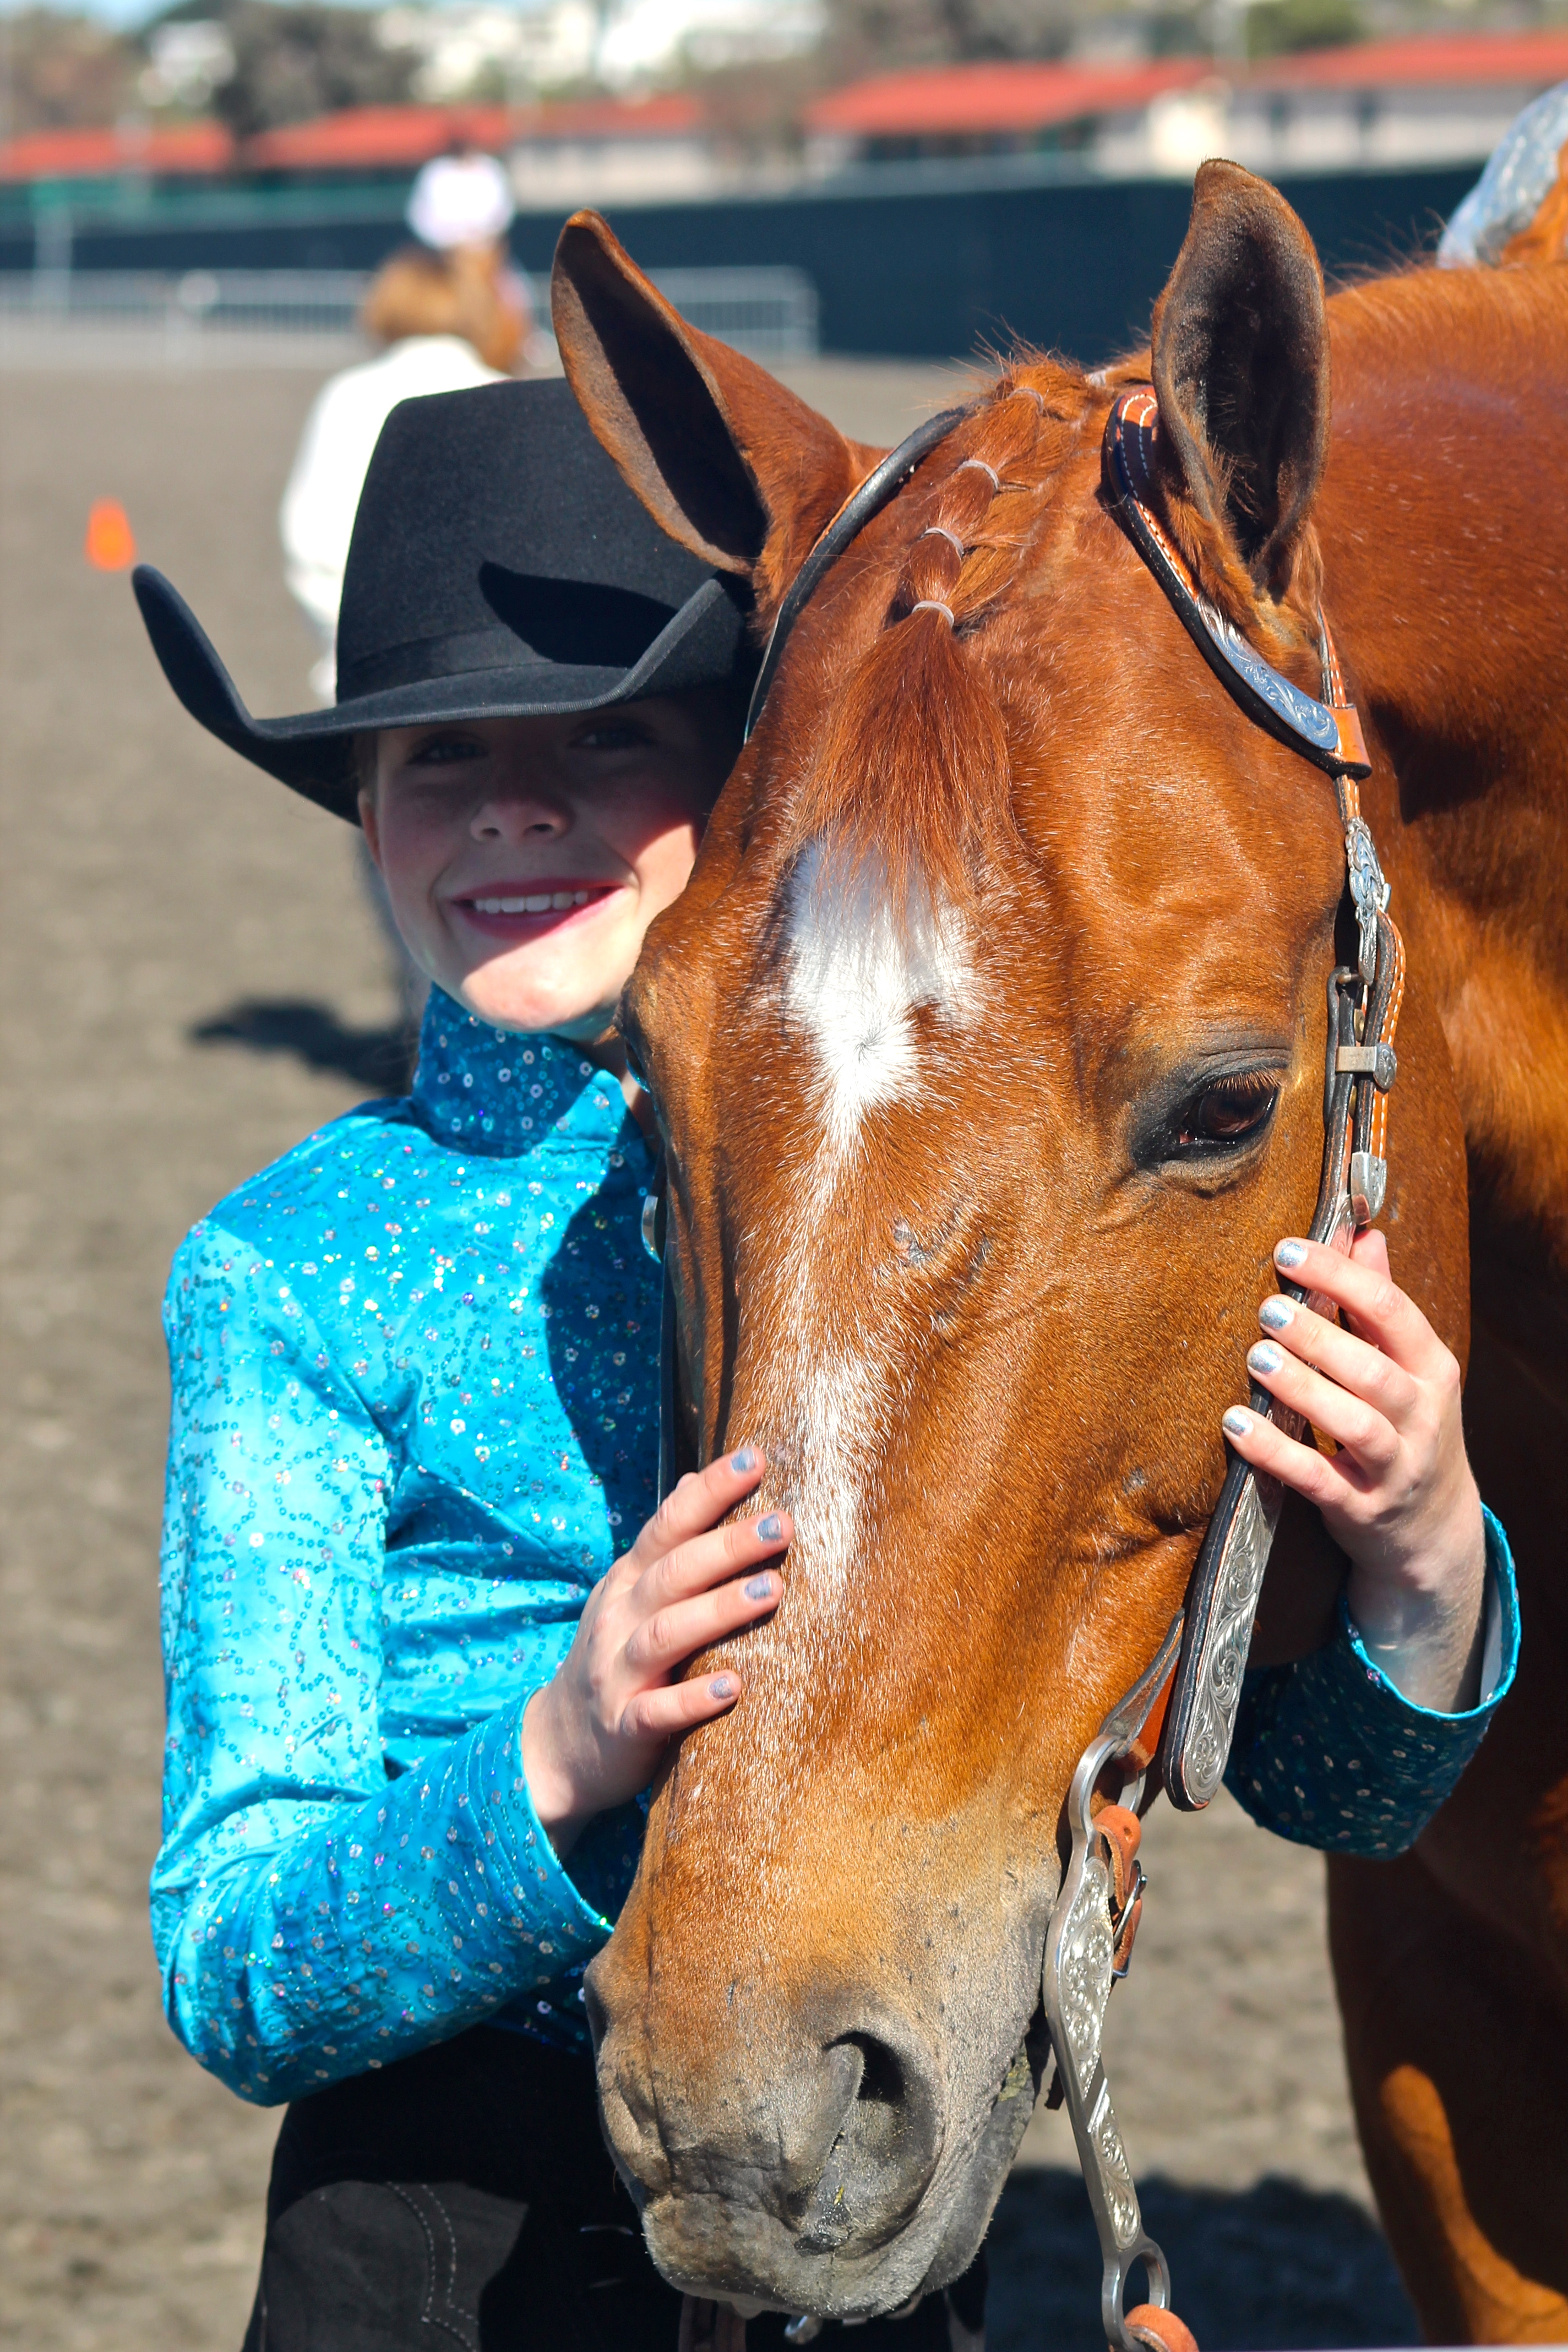 San Clemente resident Ava Garriott with her horse, Banks. Courtesy photo